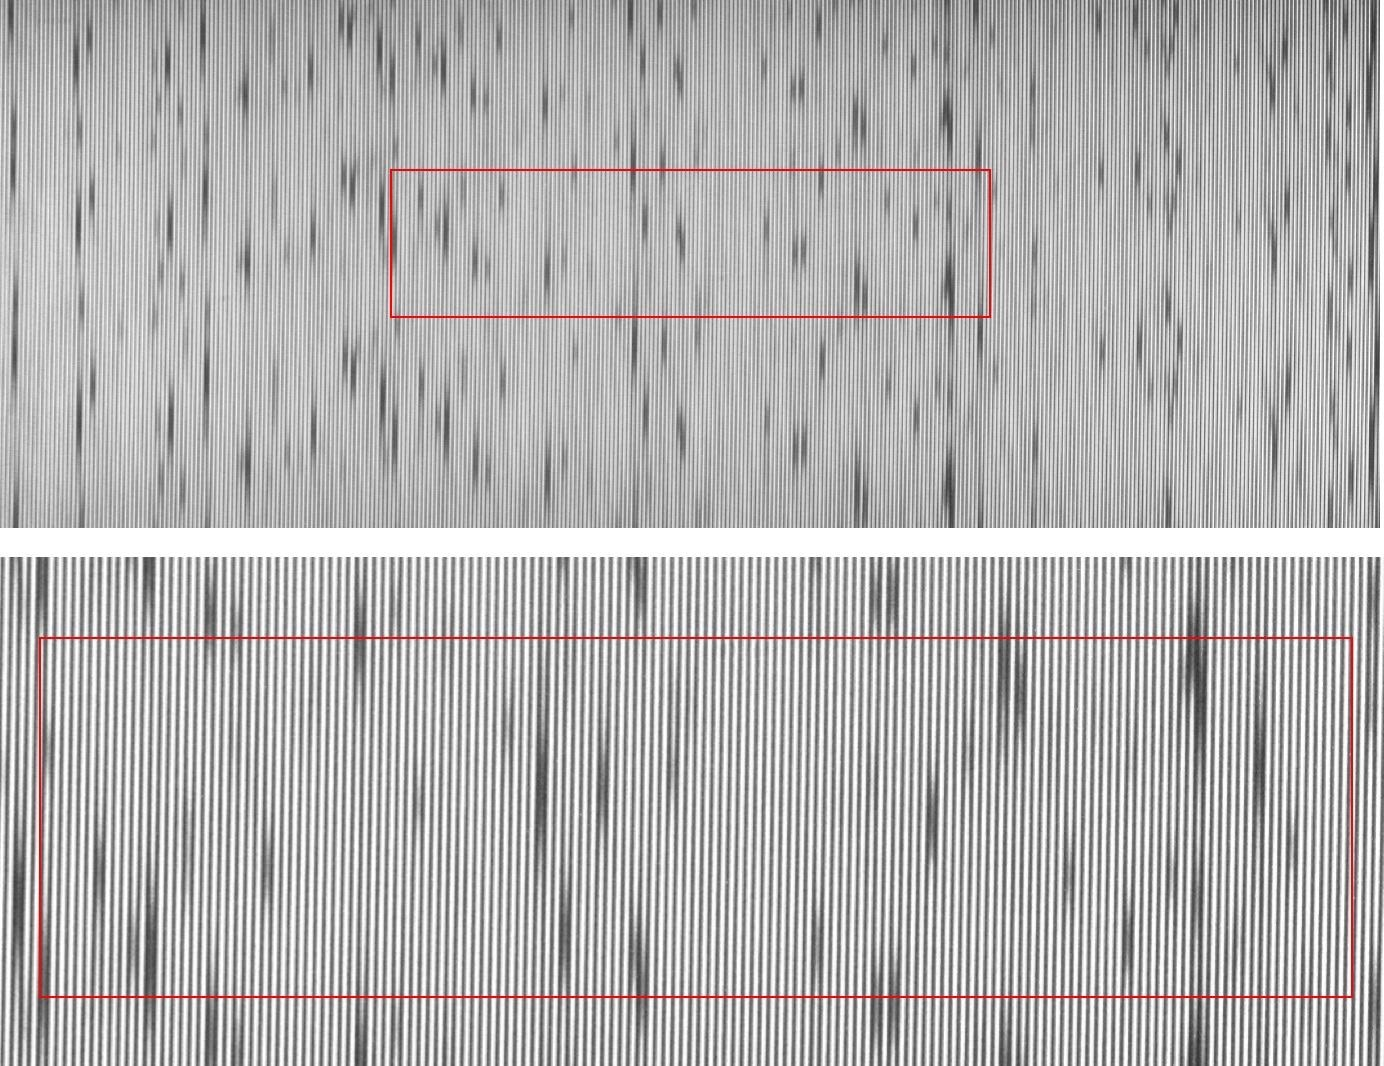 CMOS sensor images of sunlight taken with a HyperFine spectrometer. (The upper image covers the region from 527 to 547 nm, while the lower image covers a smaller spectral region from 532 541 nm). Multiple dark regions – each of which represents a Fraunhofer absorption line – interrupt the white light background of the sunlight. The red box in each image indicates one VIPA FSR in the vertical direction. The images were overexposed (i.e. highly saturated) for increased visibility.